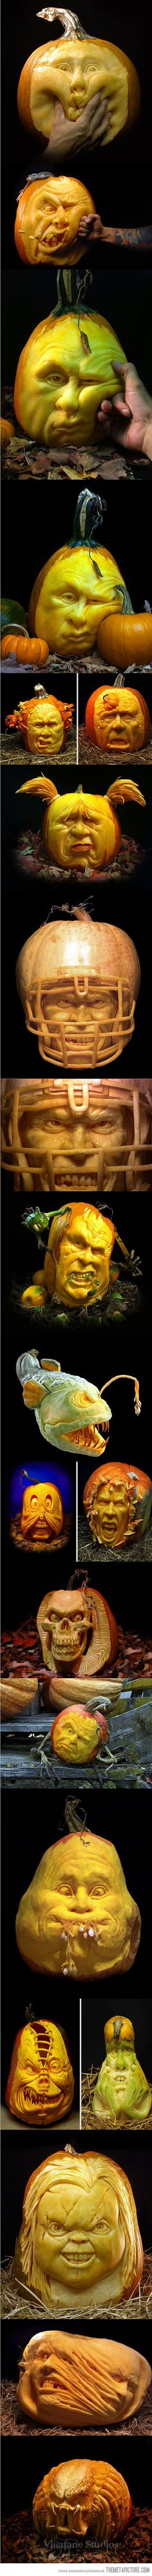 Amazing creative Pumpkin carvings! @Amy Magness ............ Something for all, eheheheh